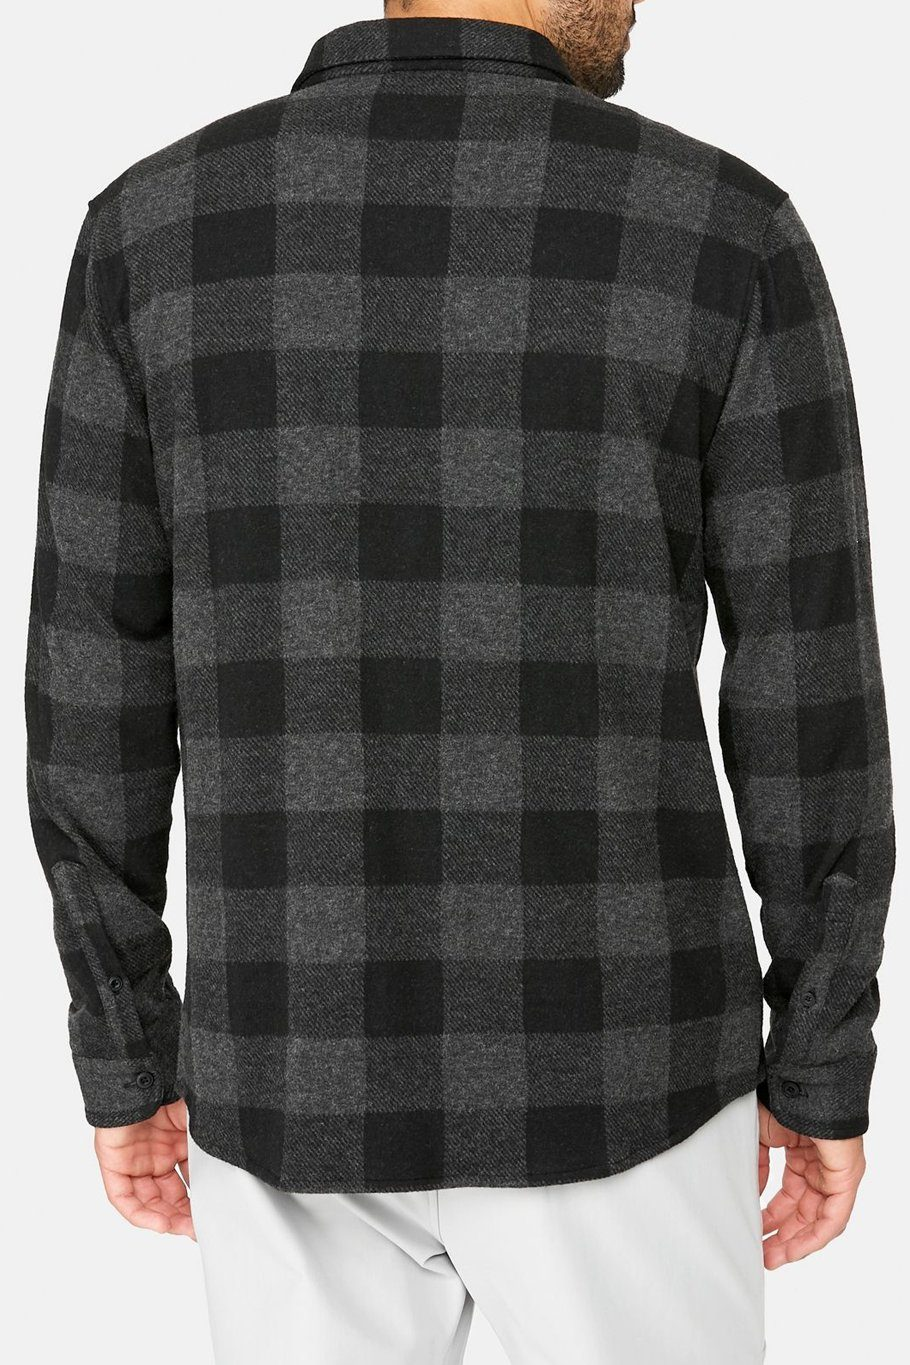 North Star Sweater Flannel - Charcoal - Shore